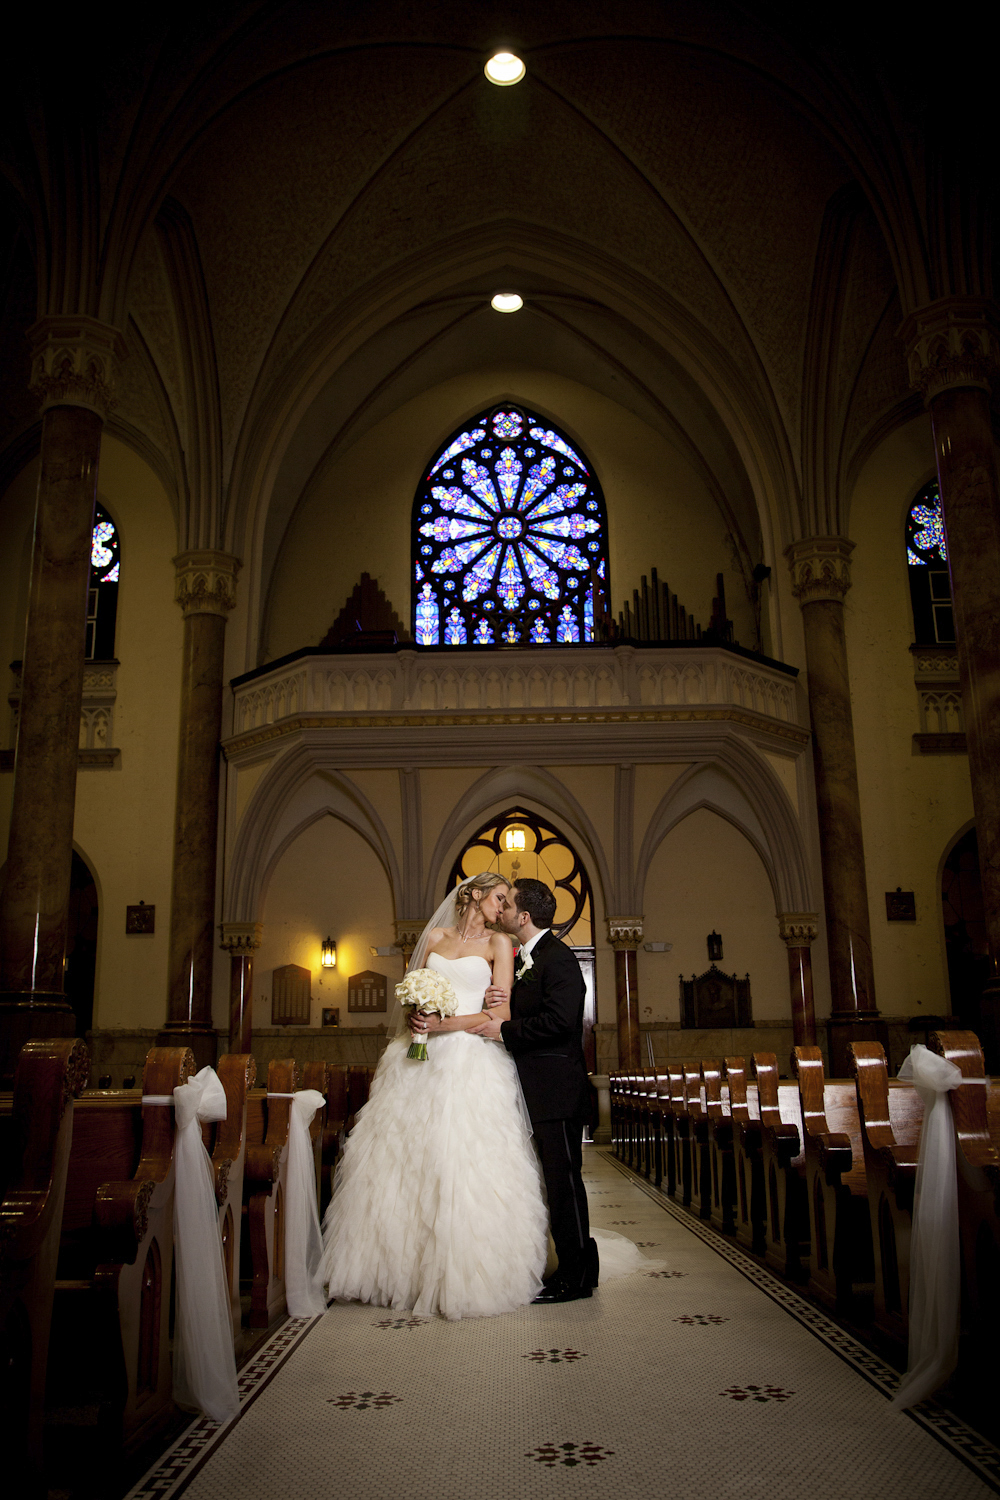 Saint-Marys-Cathedral-Indianapolis-Indiana-Wedding-Photographer-Crowes-Eye-Photography-430.jpg